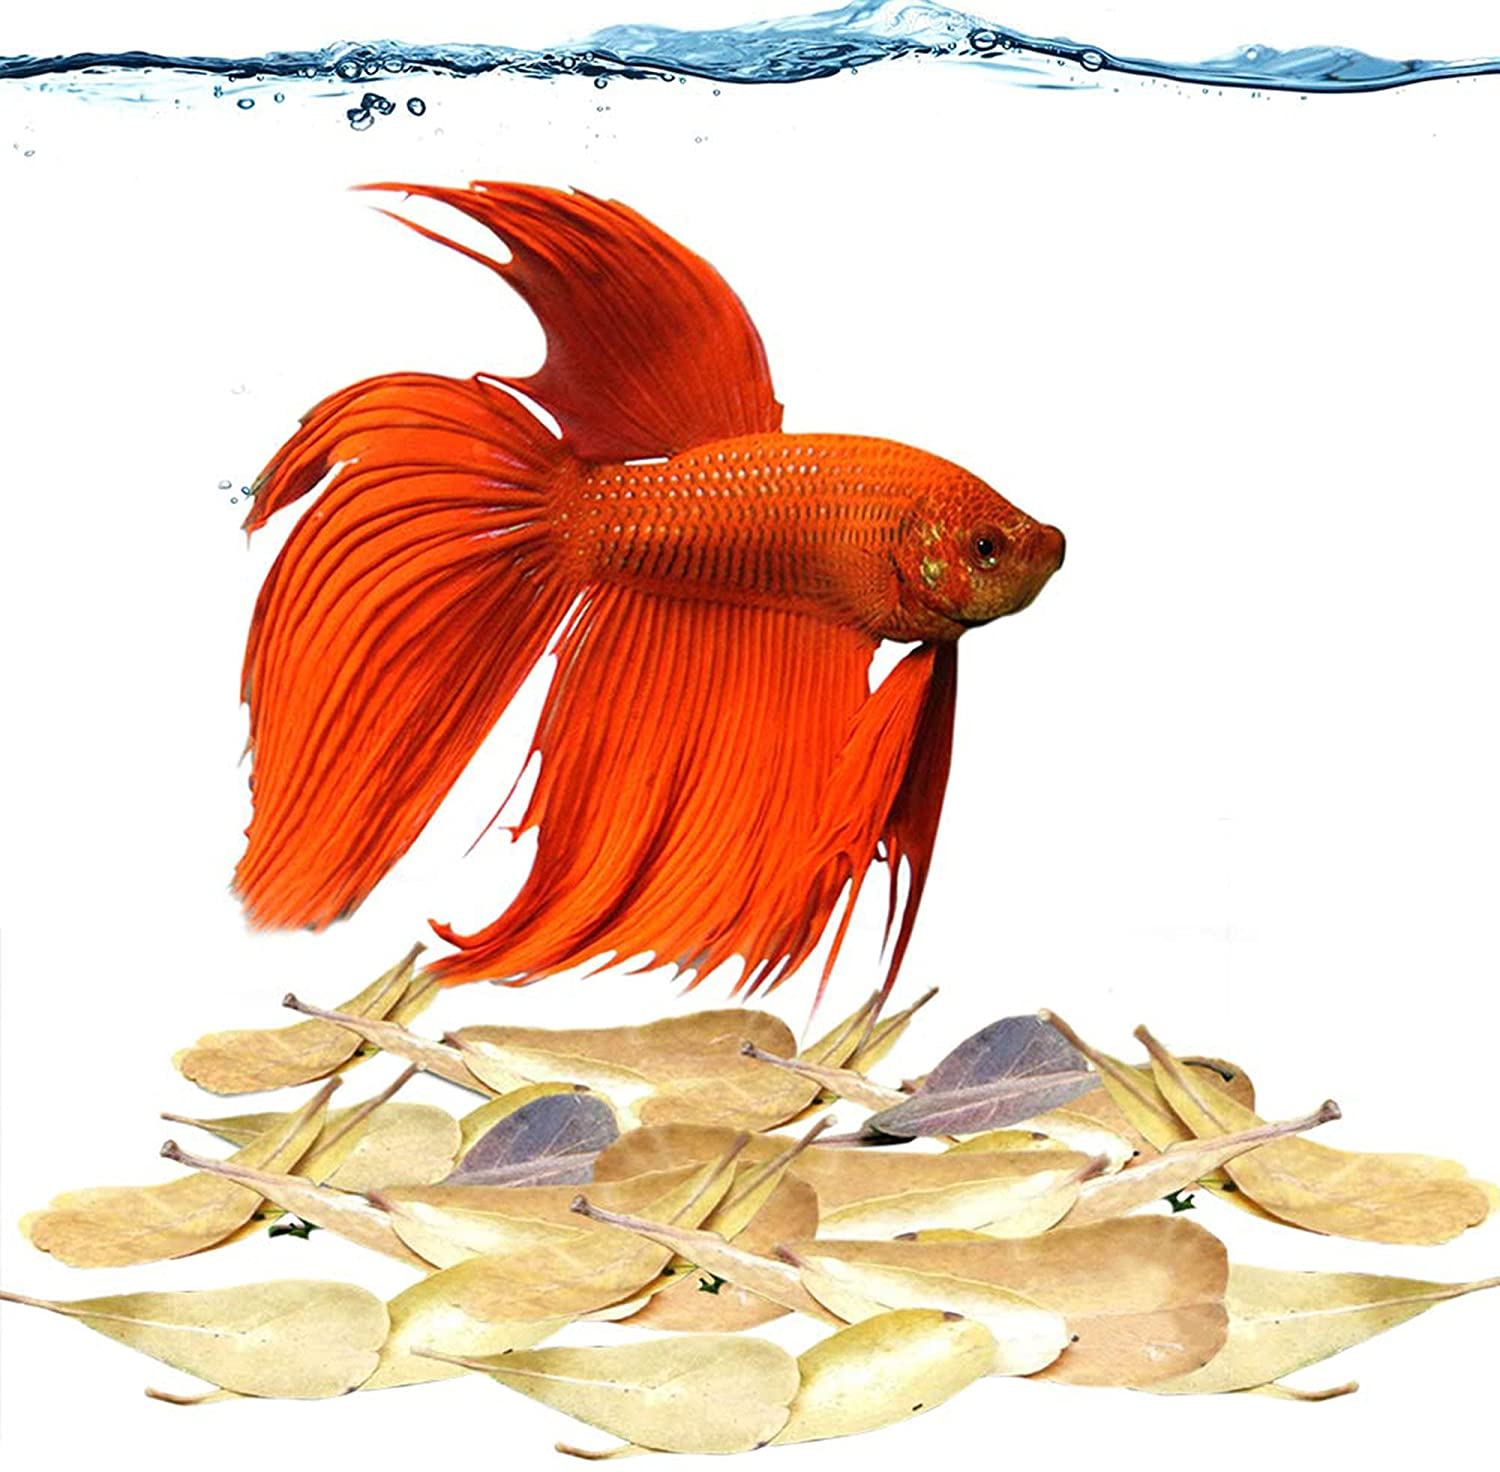 """SunGrow Fin Rot Leaves, Betta Medicine & Water Supplement, Keep Bettas Happy, Contains Beneficial Compounds, 2"""" (5cm) Long Indian Almond Leaves, 50 Leaves"""